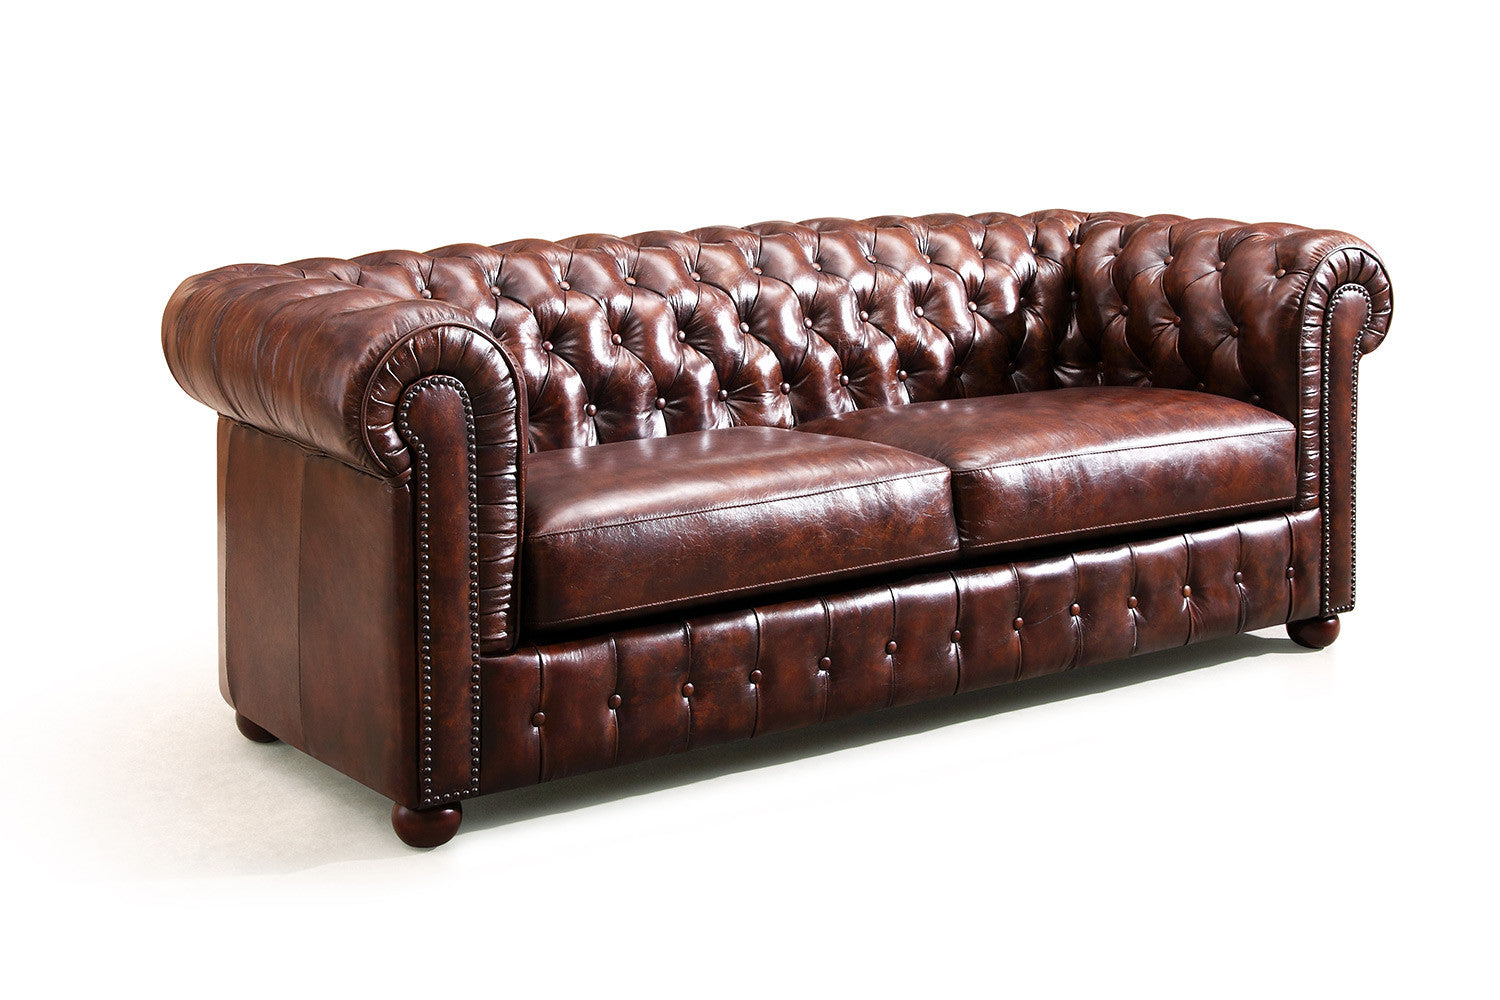 Canap chesterfield original rose moore - Canape chesterfield maison du monde ...